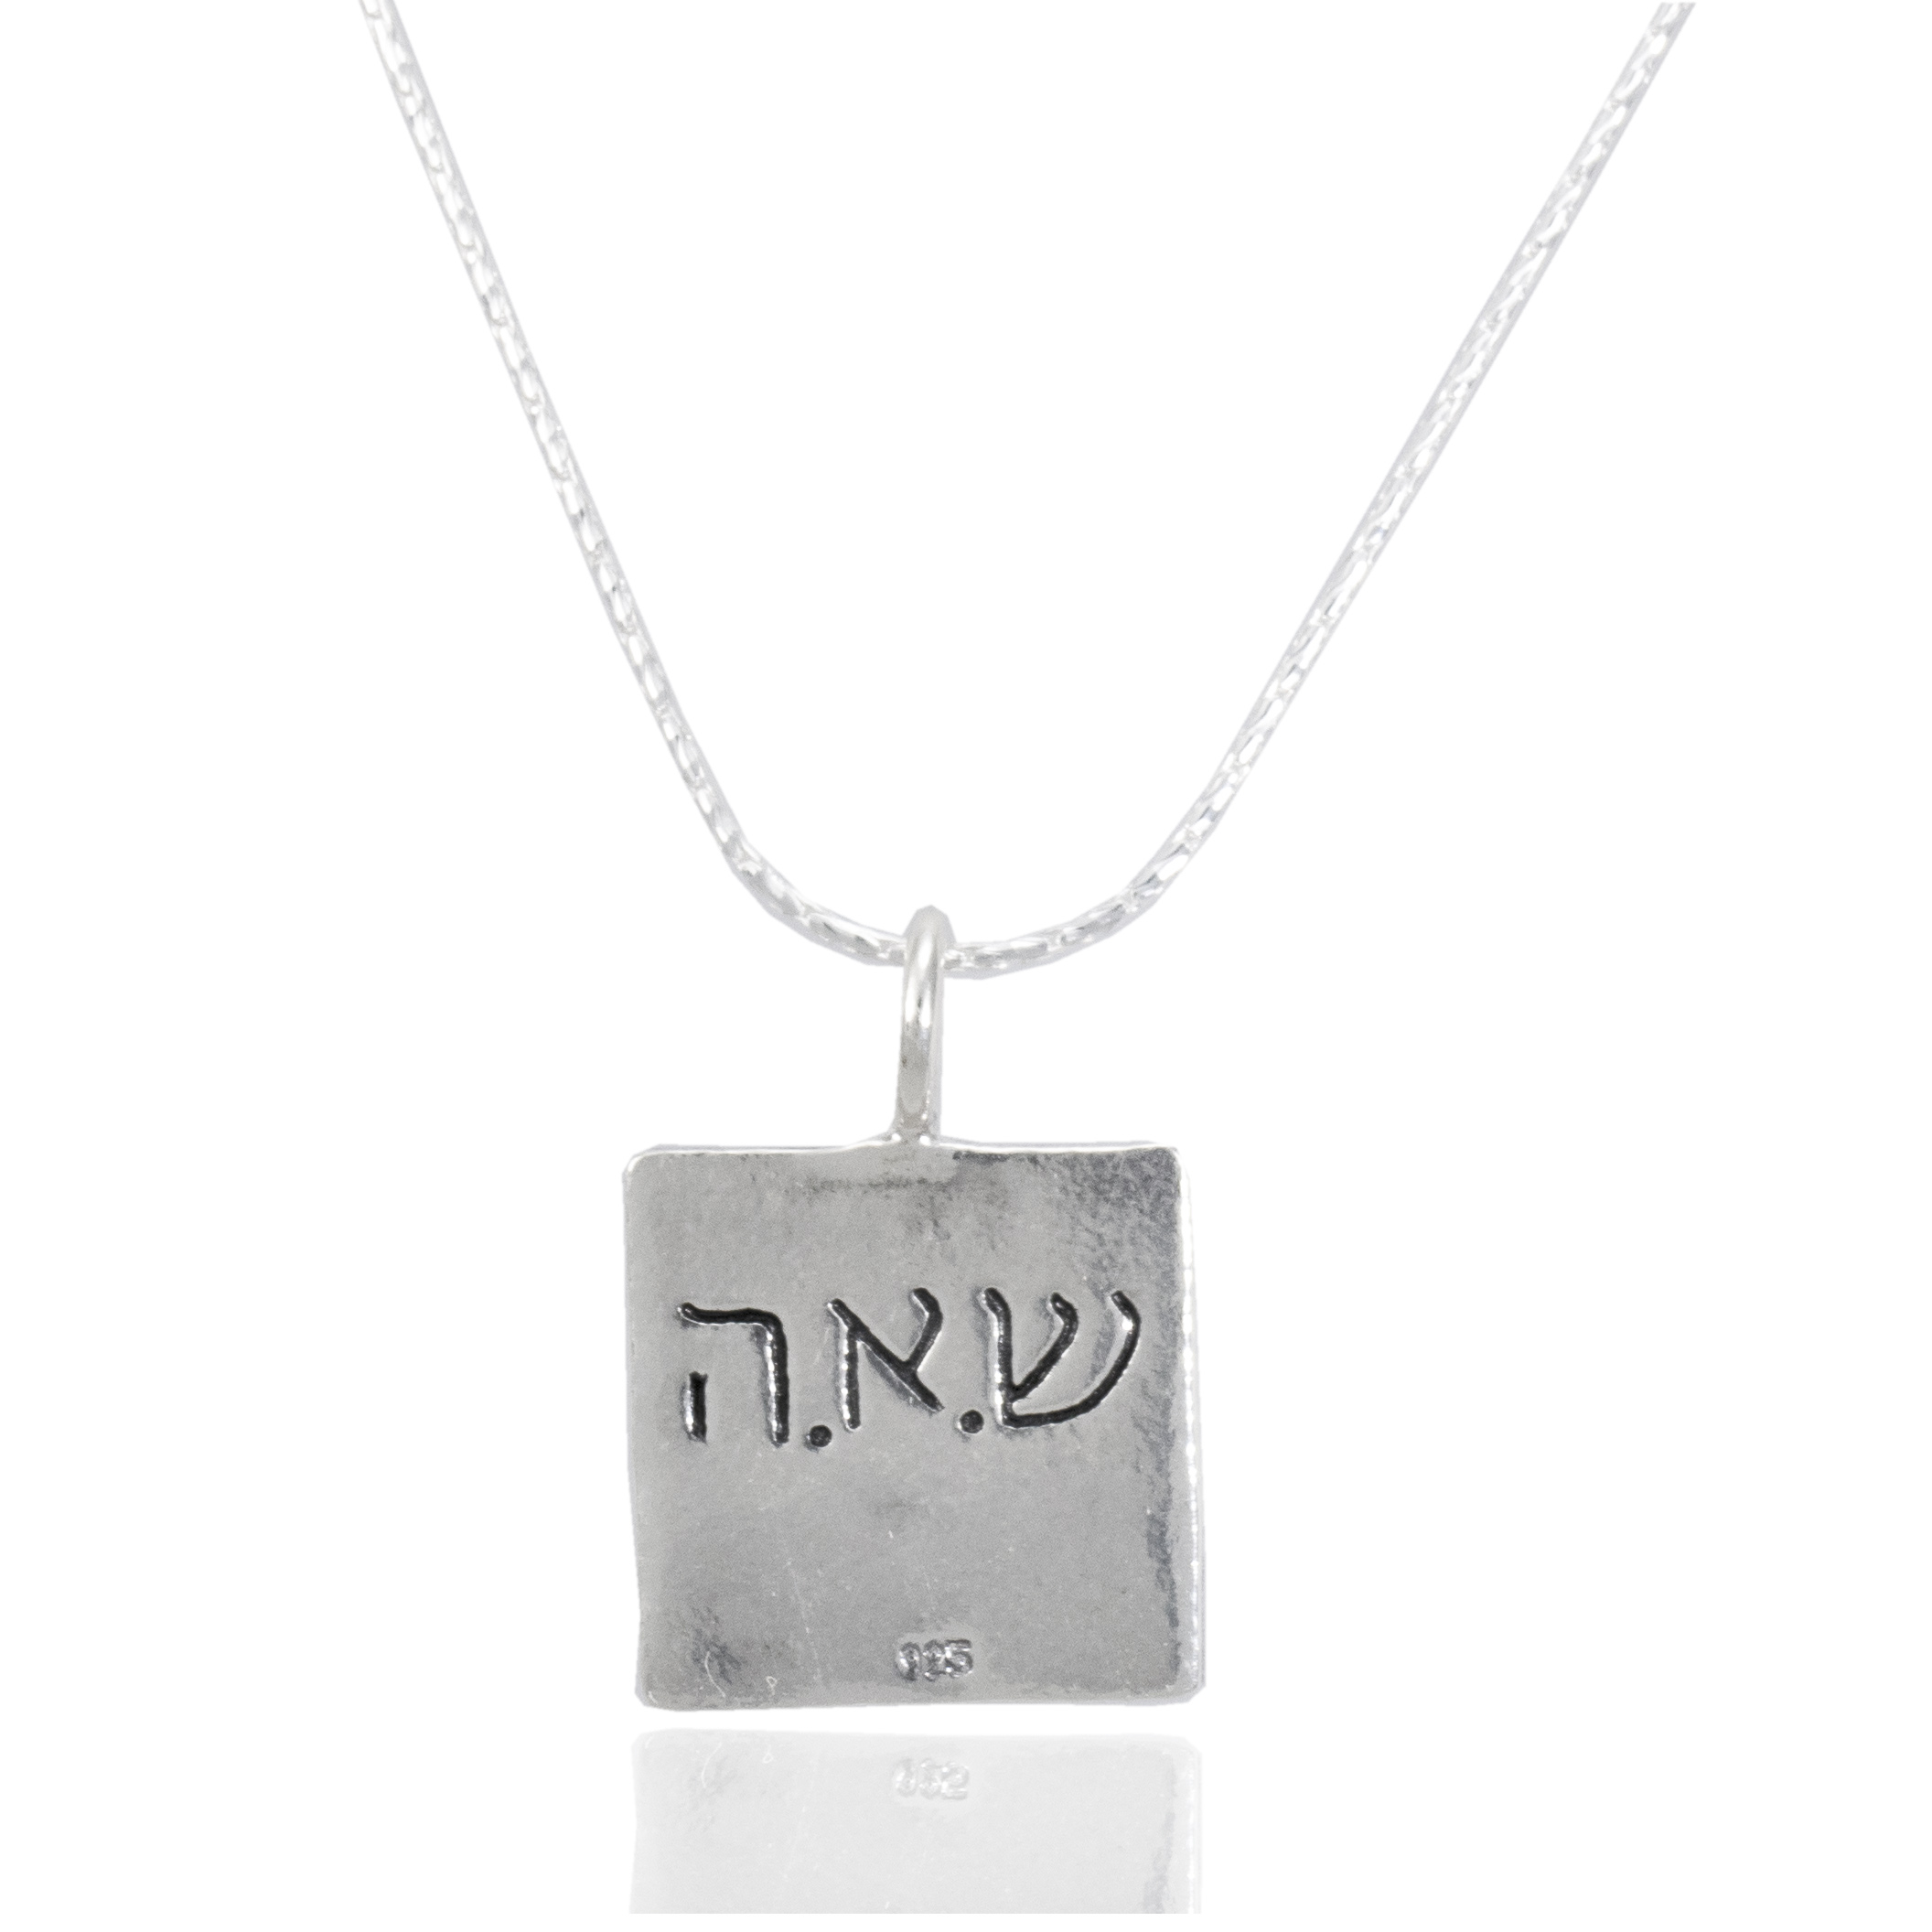 HAND MADE SQUARE NECKLACE WITH ש.א.ה HEBREW LETTERS FROM THE KABALA